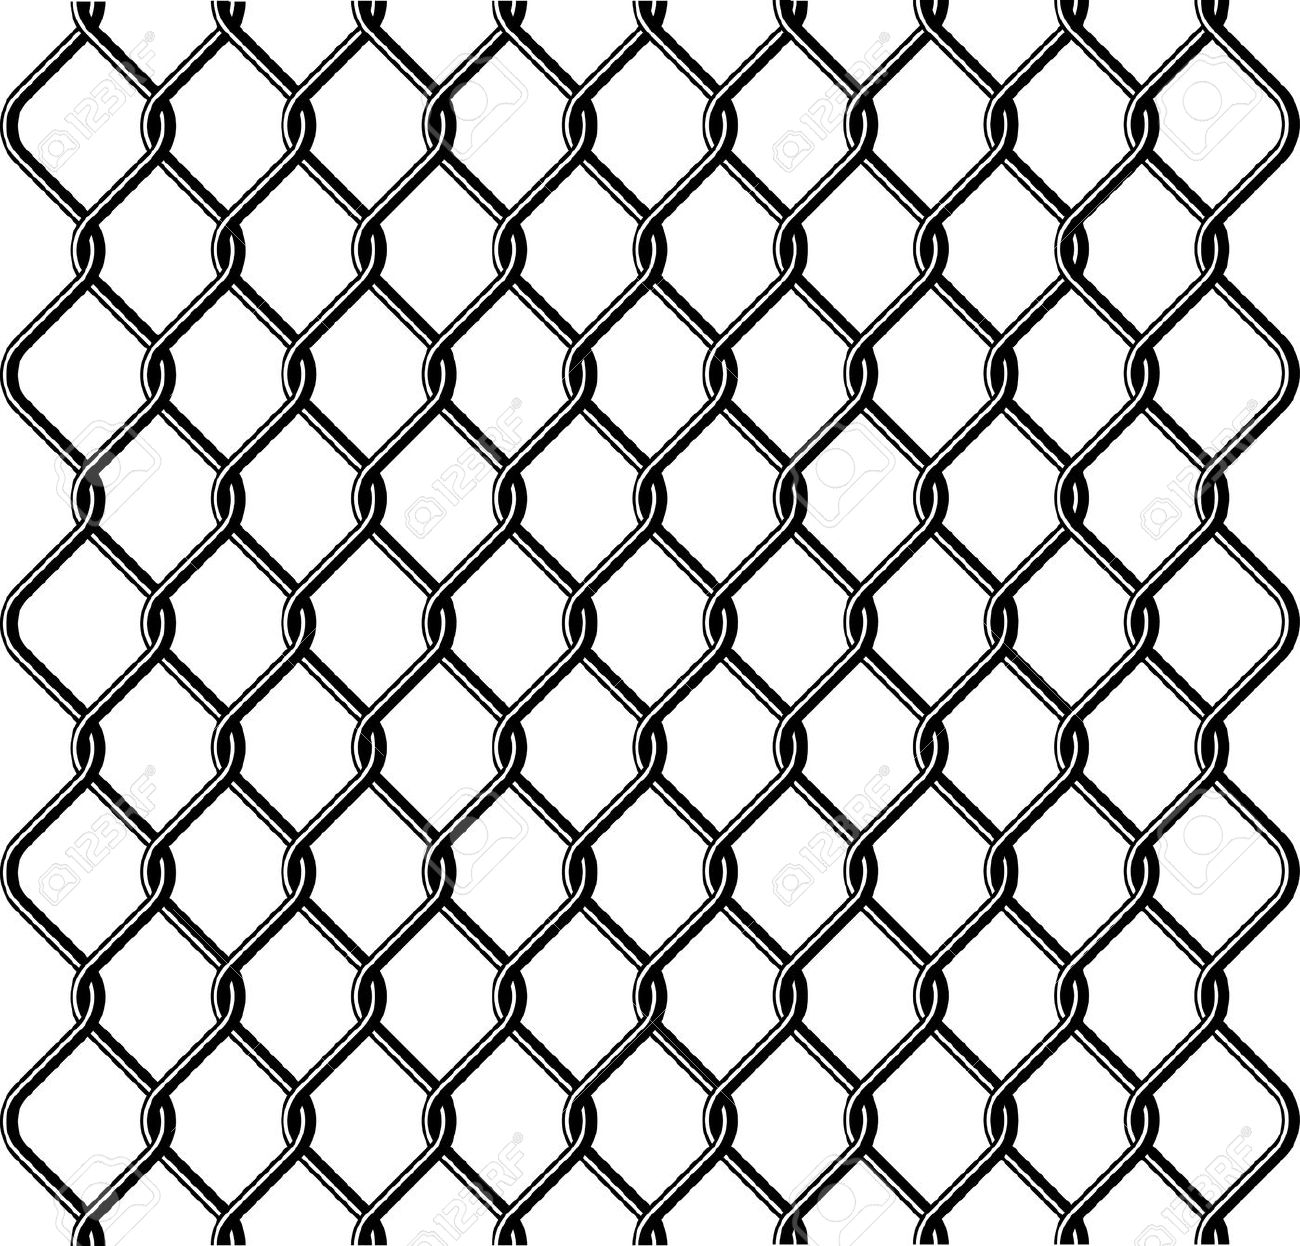 Mesh wire fence clipart #14